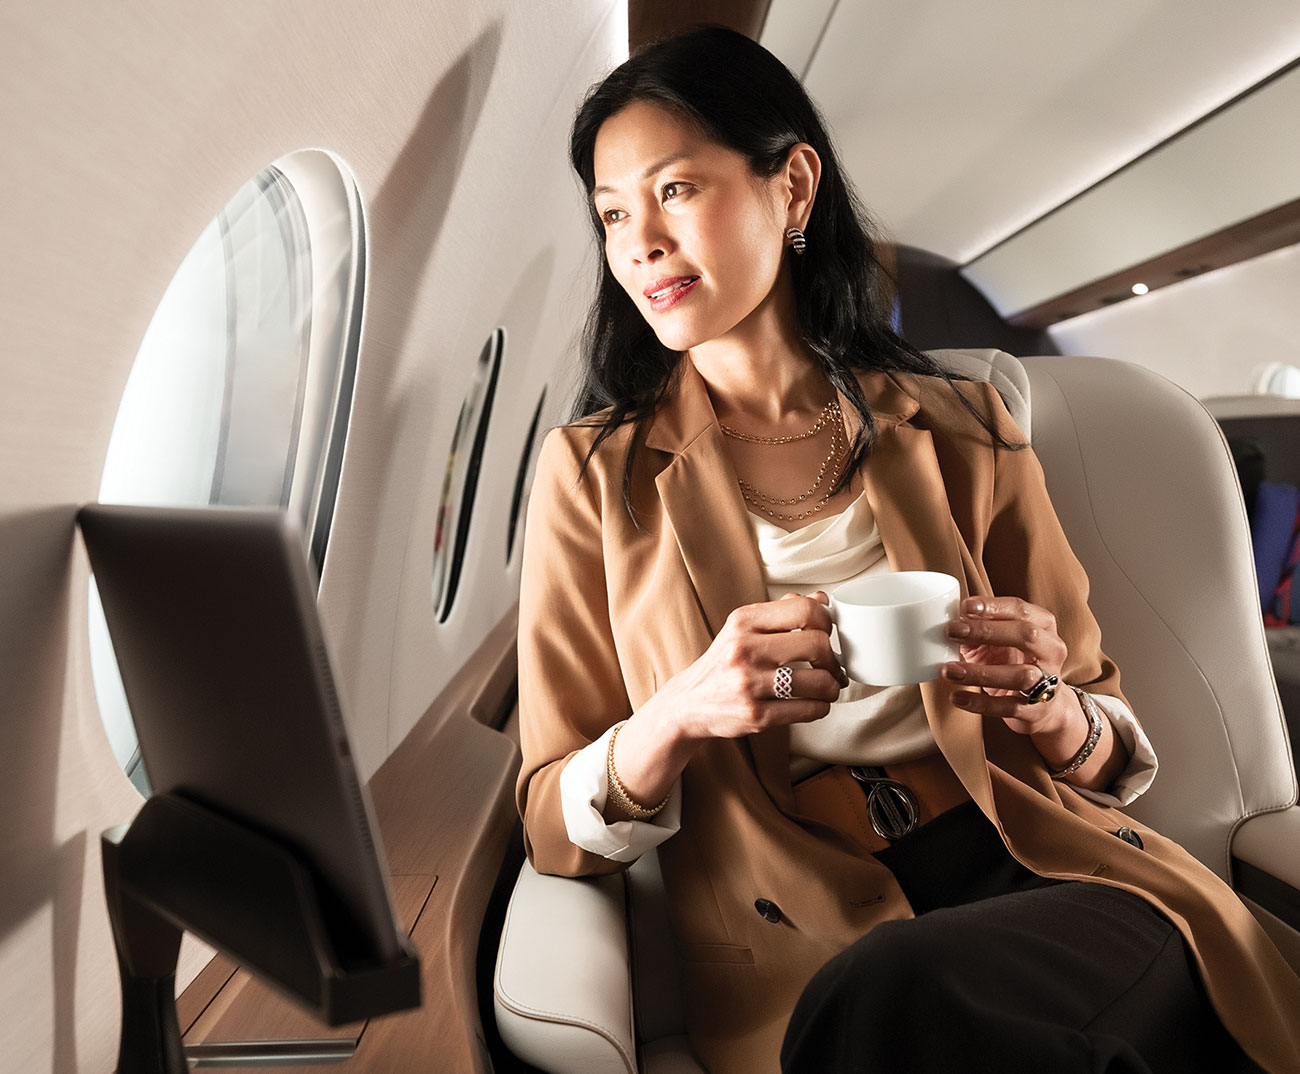 Women enjoys hot beverage in leather chair while gazing out aircraft window